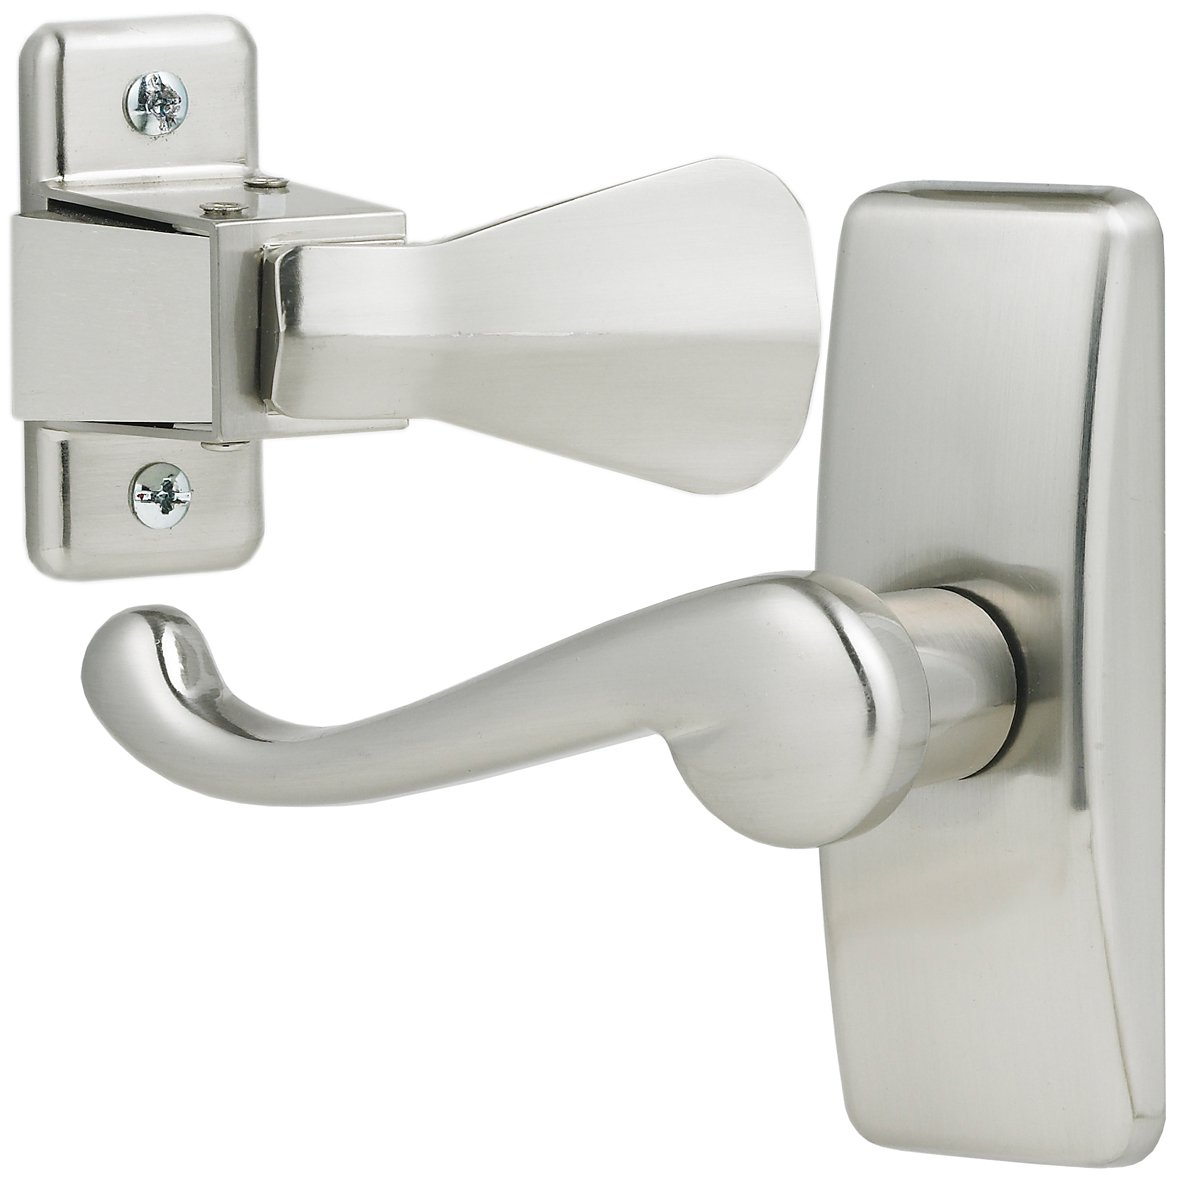 Ideal Security GL Lever Set For Storm and Screen Doors A Touch of Class, Easy to Install Satin Silver